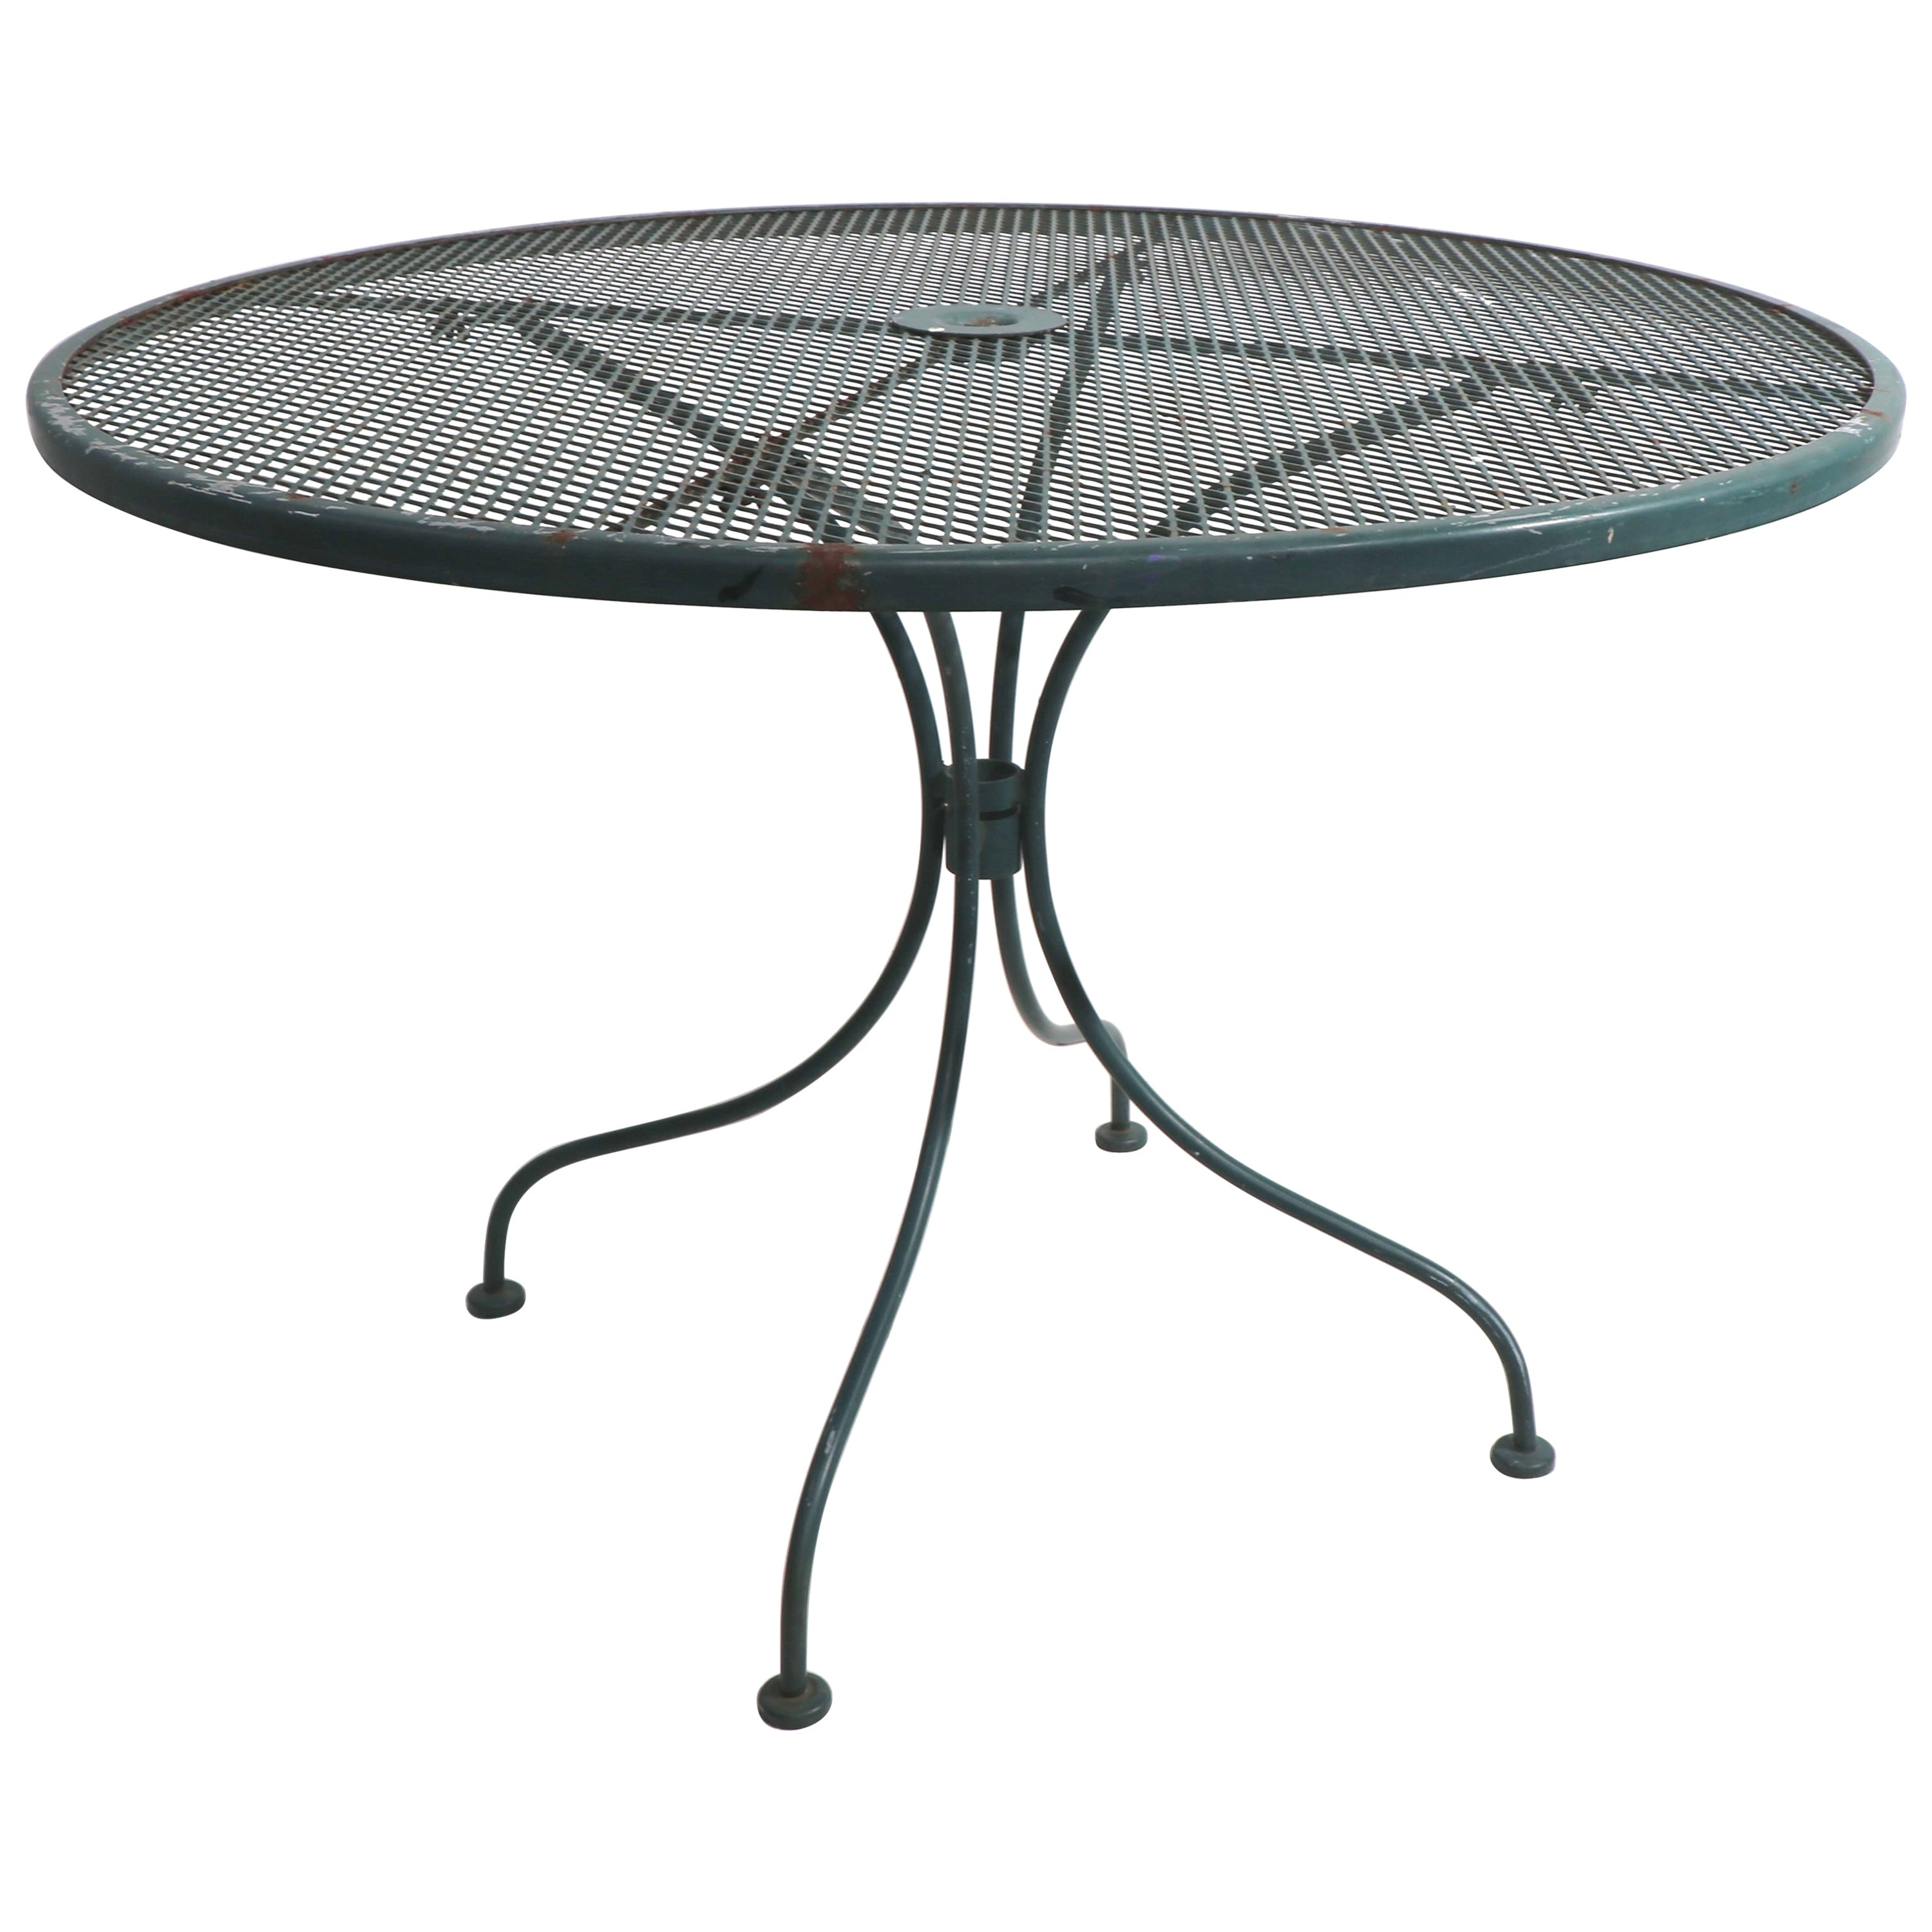 Wrought Iron and Metal Mesh Garden Patio Cafe Dining Table Att. to Woodard